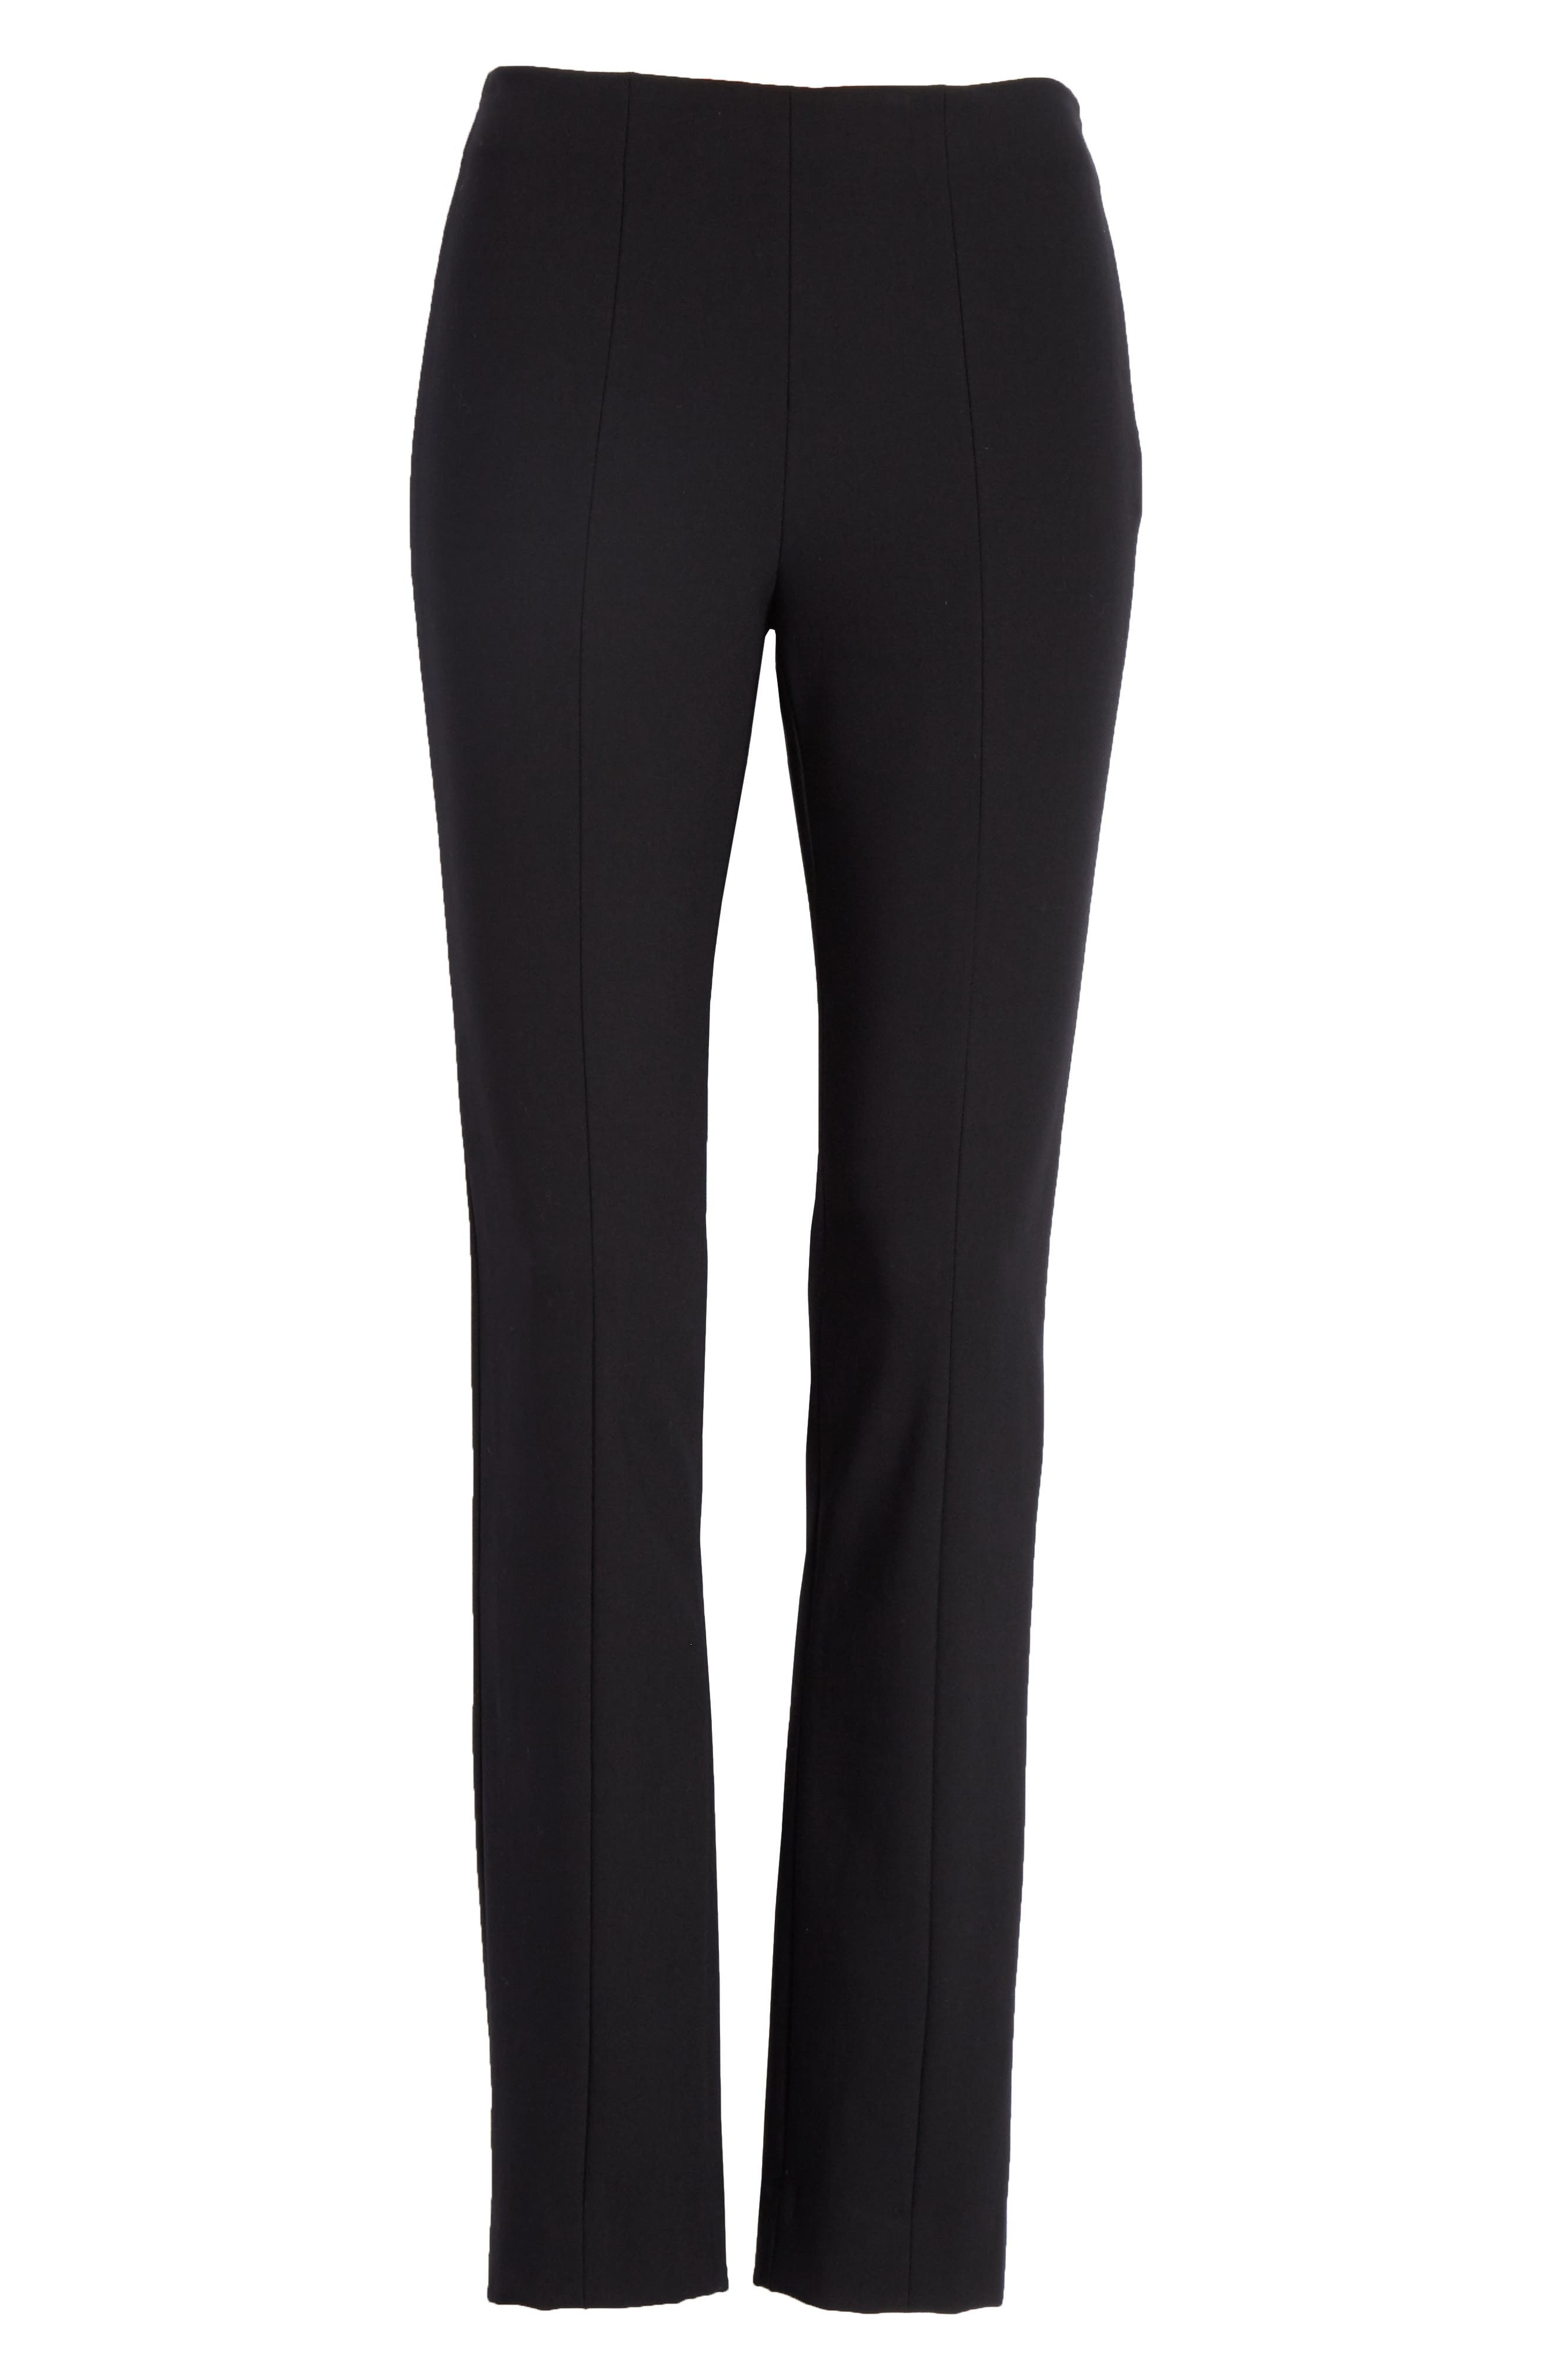 High Waist Leggings,                             Alternate thumbnail 6, color,                             001